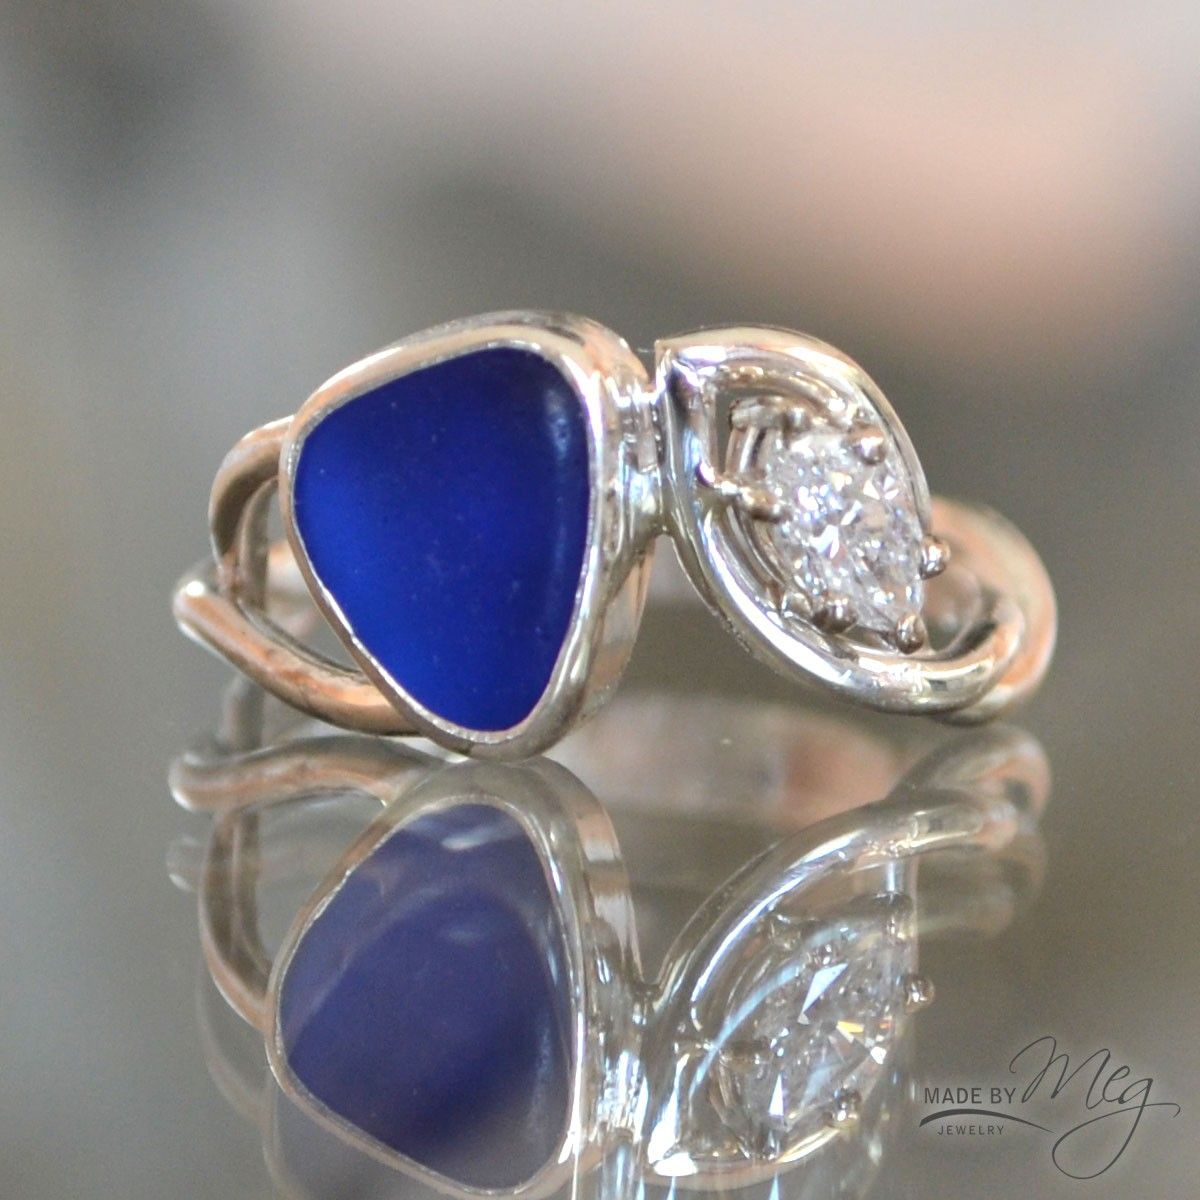 The Norwegian - Custom Sea Glass Engagement Ring with blue